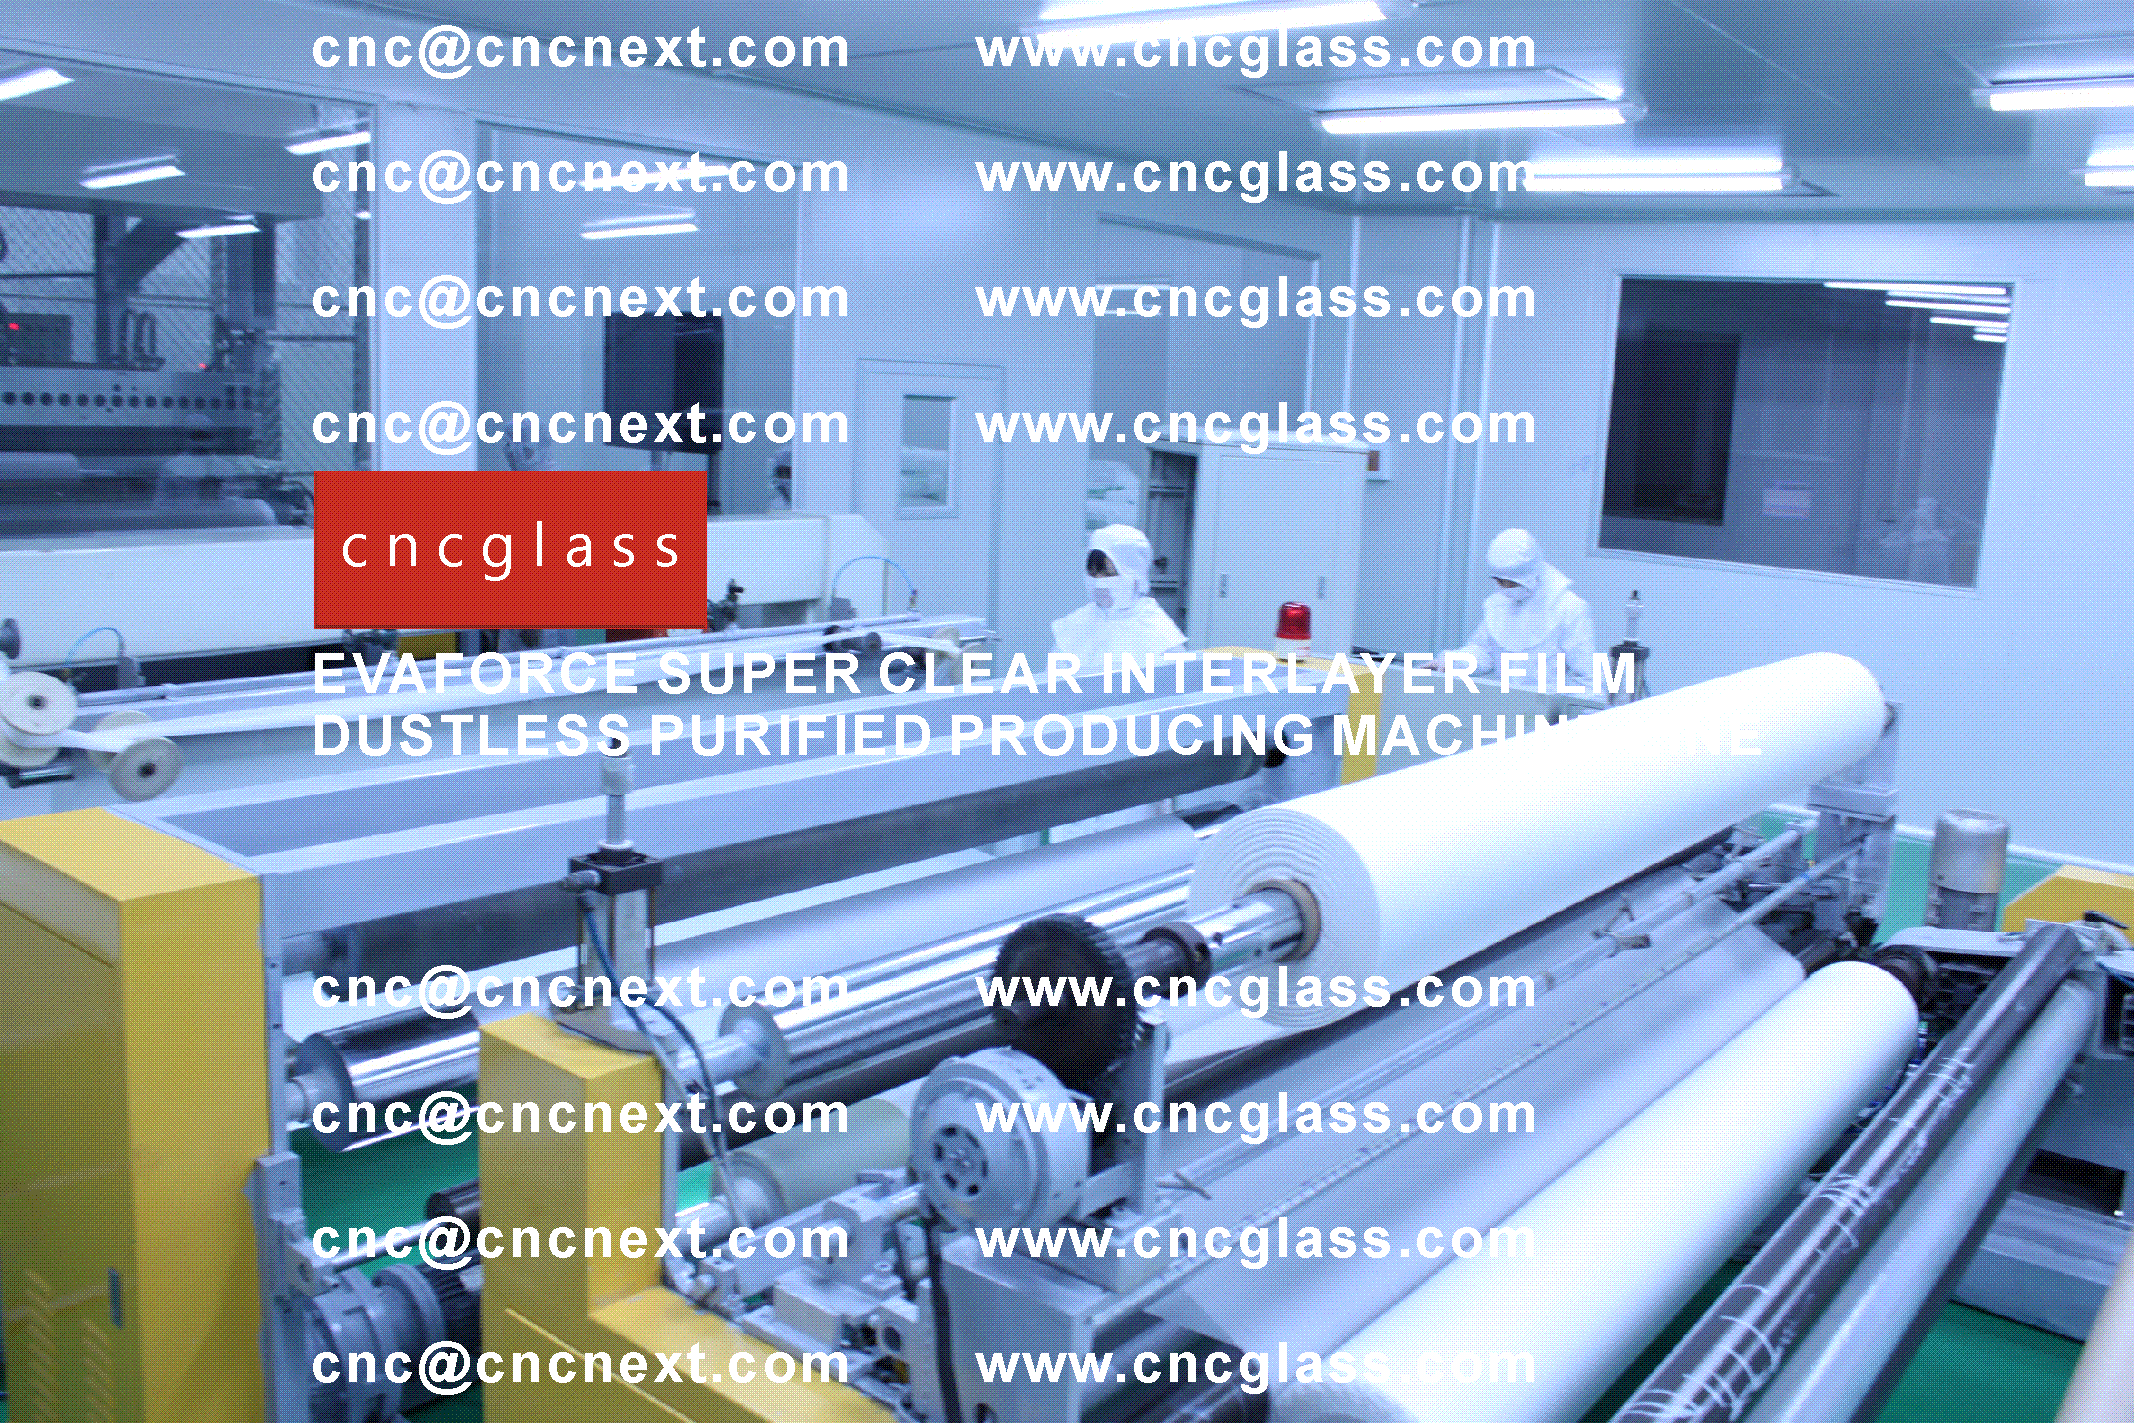 004 EVAFORCE SUPER CLEAR INTERLAYER FILM PRODUCING MACHINE LINE